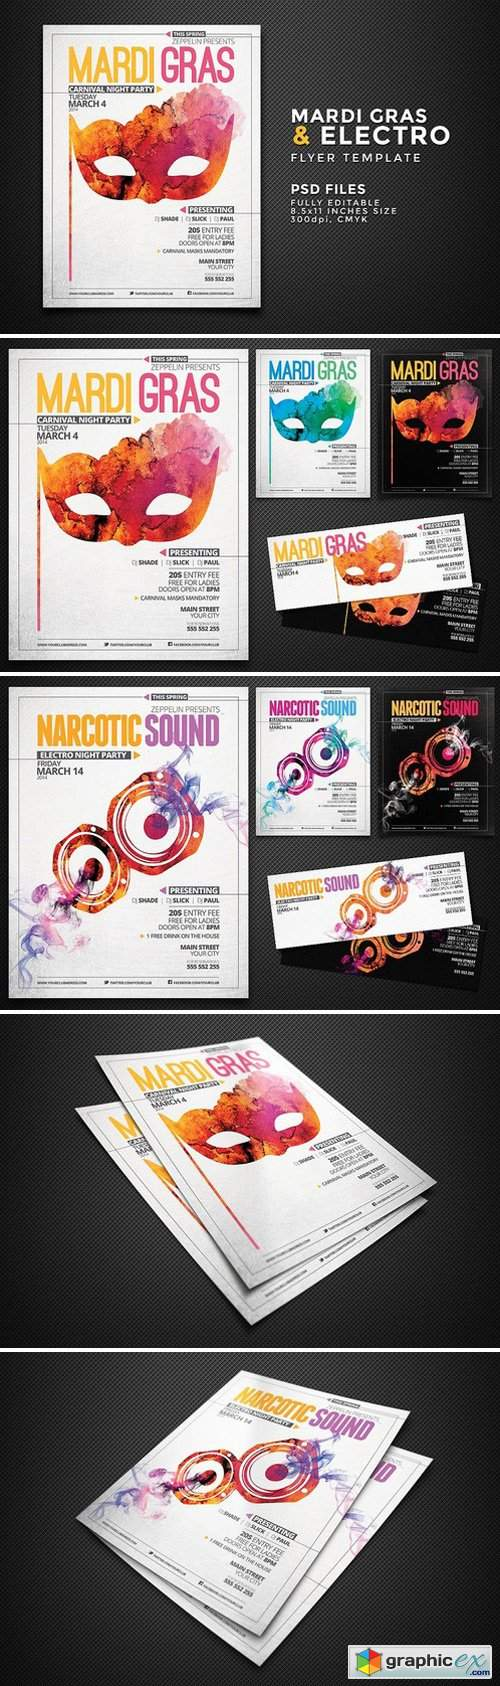 Mardi Gras and Other Events Flyer Template